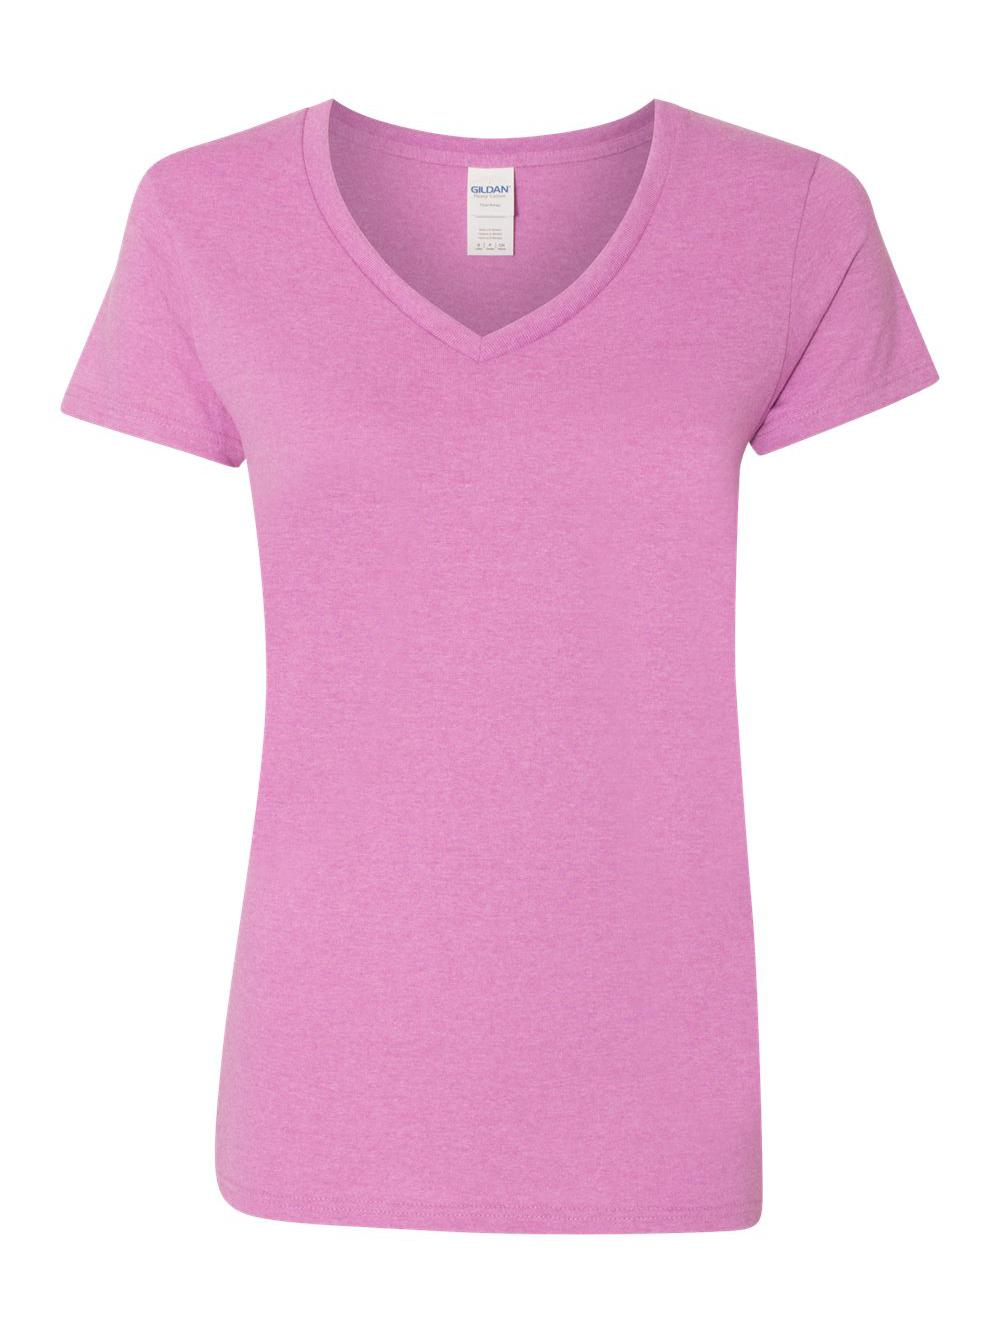 Gildan-Heavy-Cotton-Women-039-s-V-Neck-T-Shirt-5V00L thumbnail 21